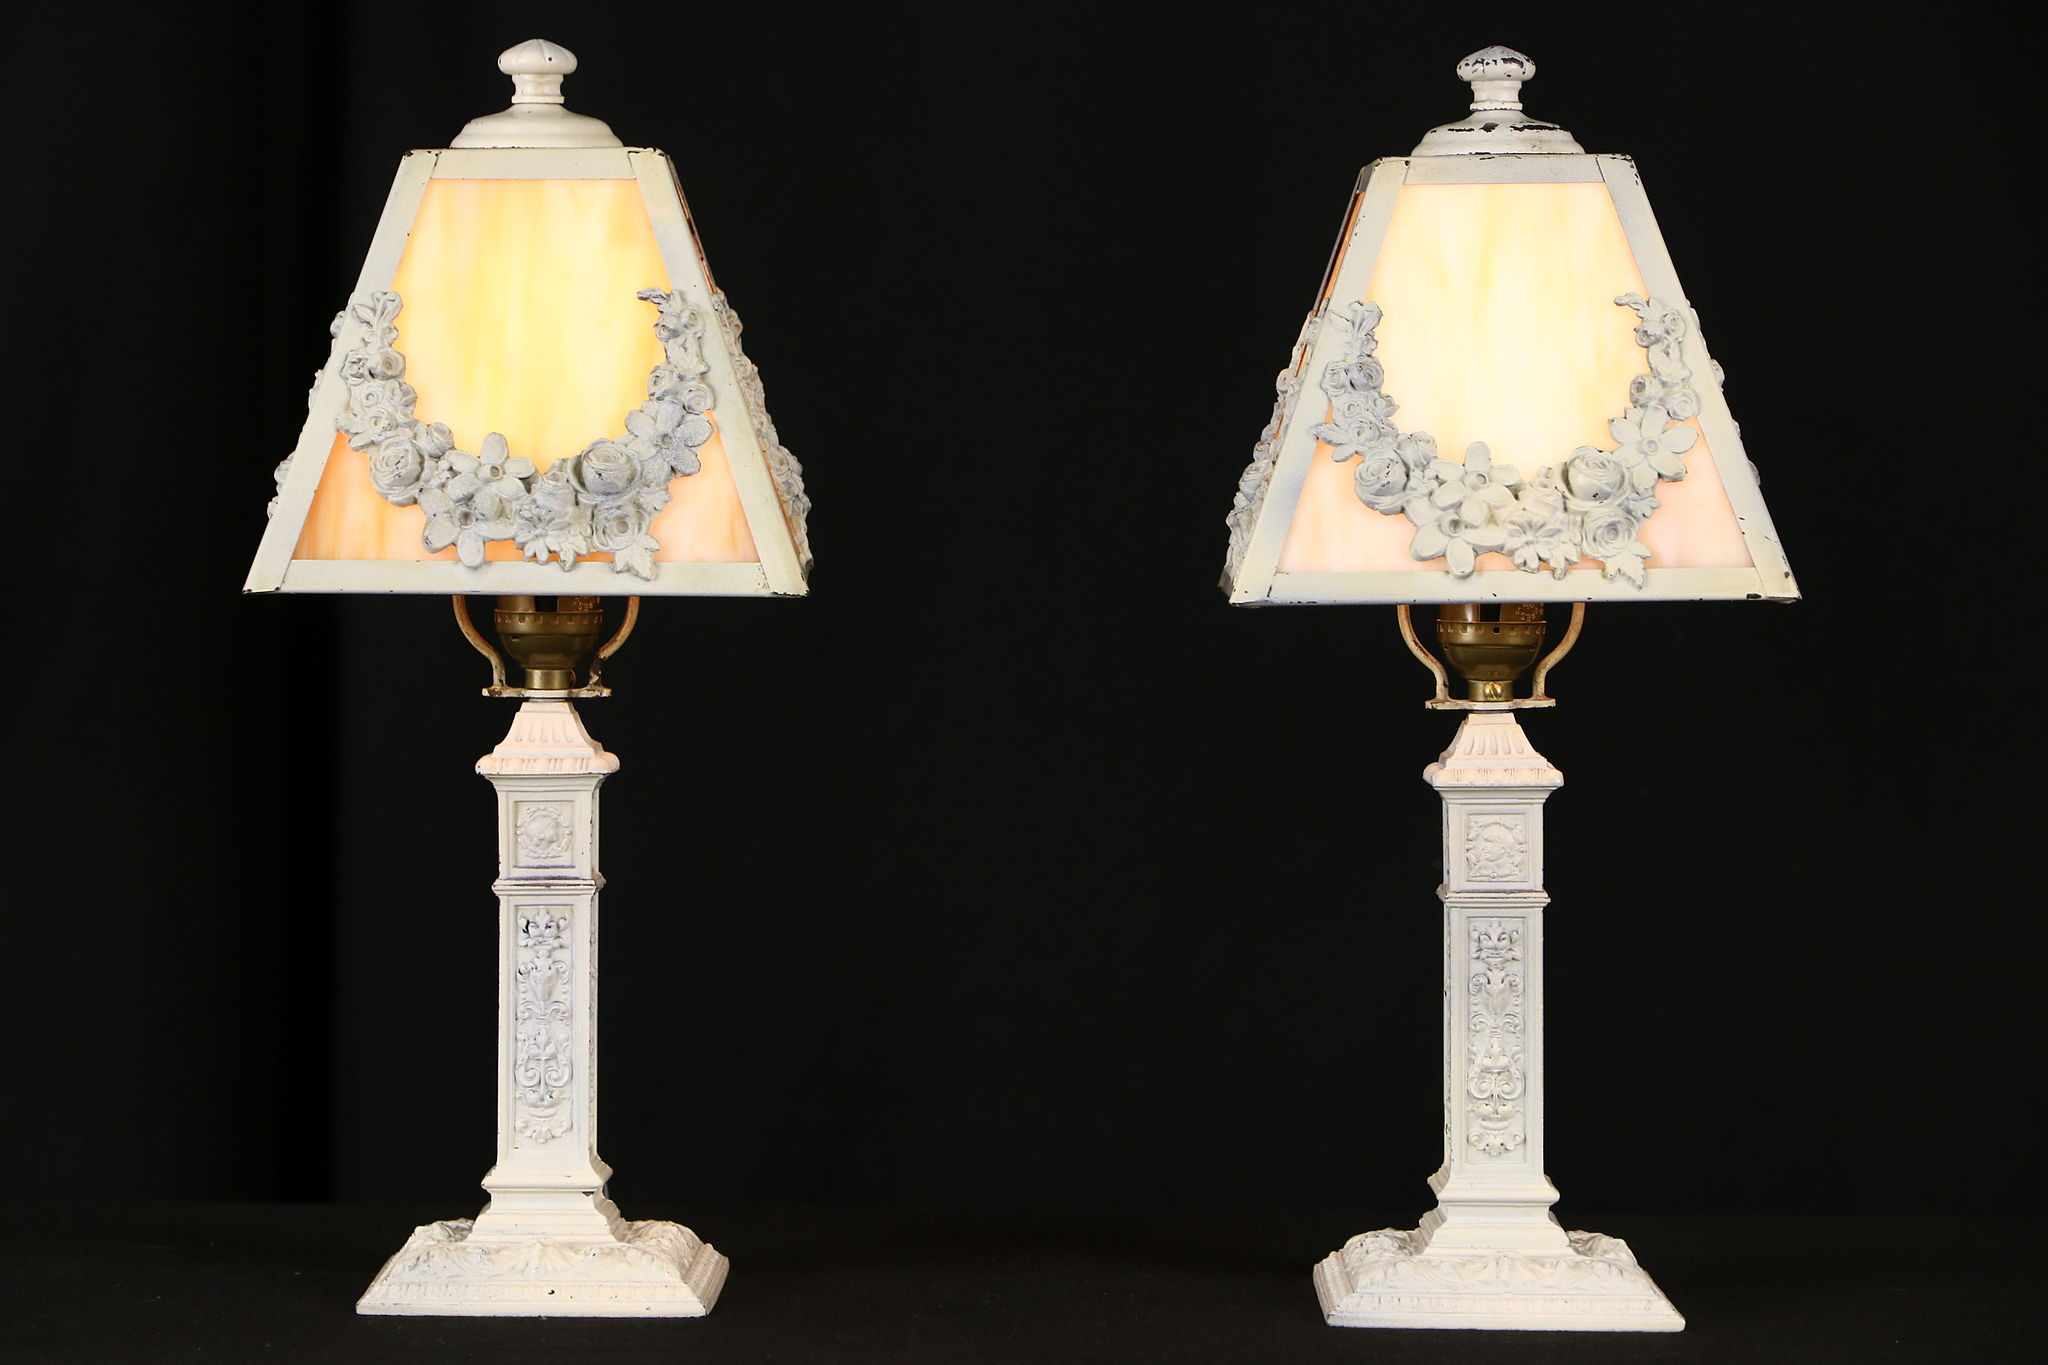 Pair Of 1915 Boudoir Lamps, Stained Glass Shades, ...